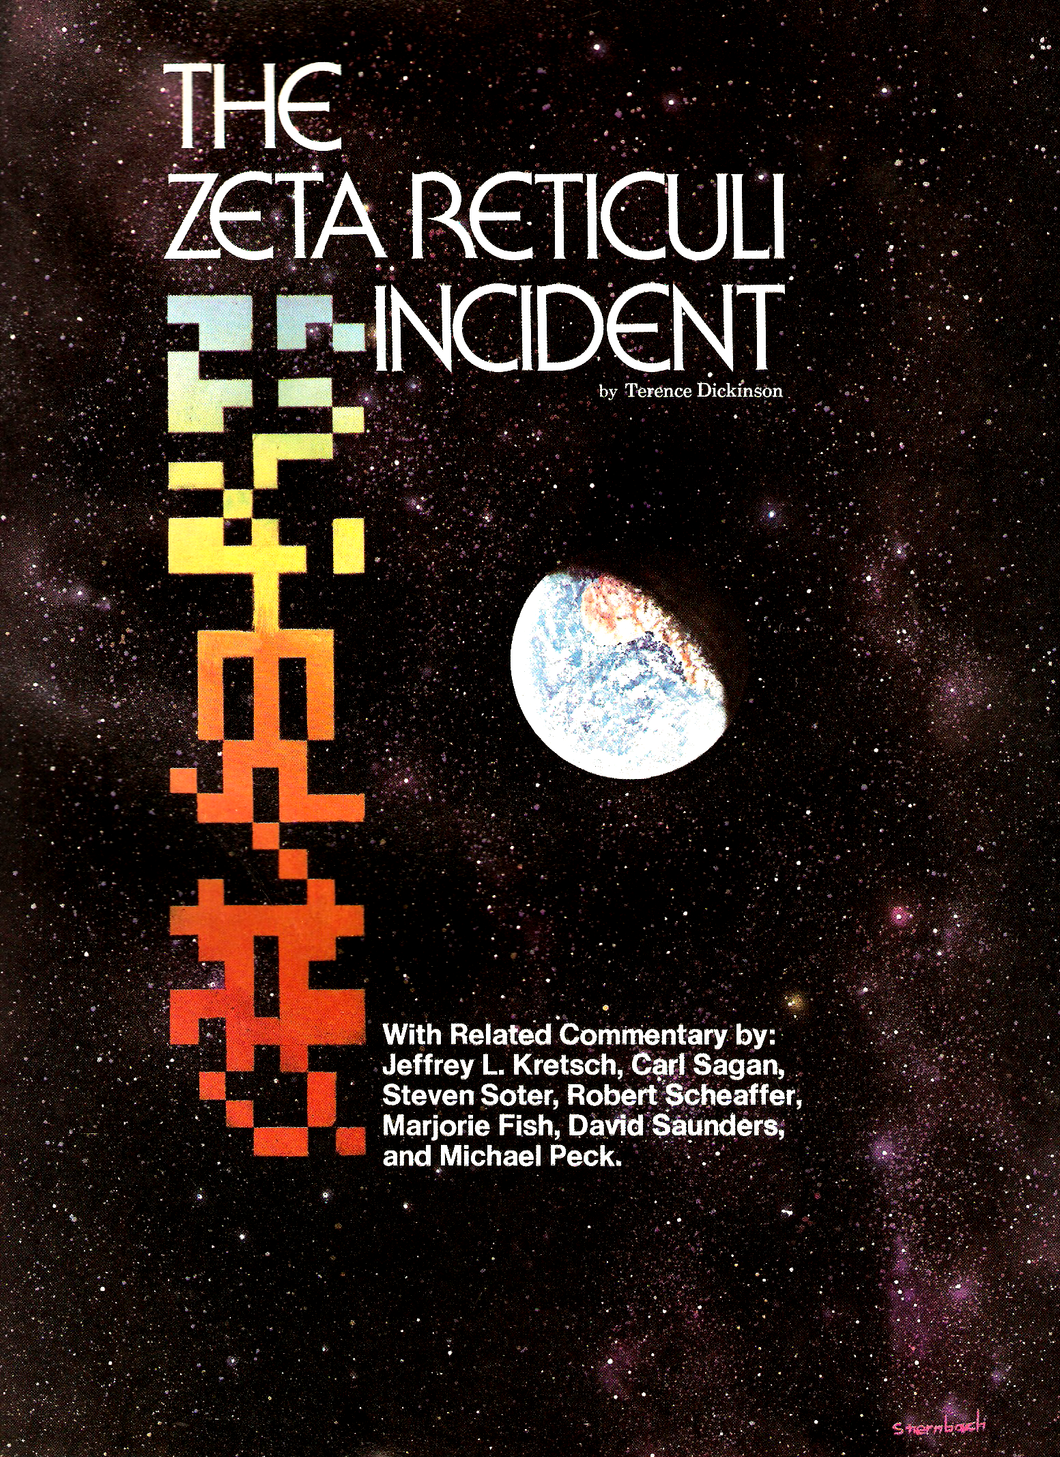 Zeta Reticuli Incident: The Star Map by the Hills